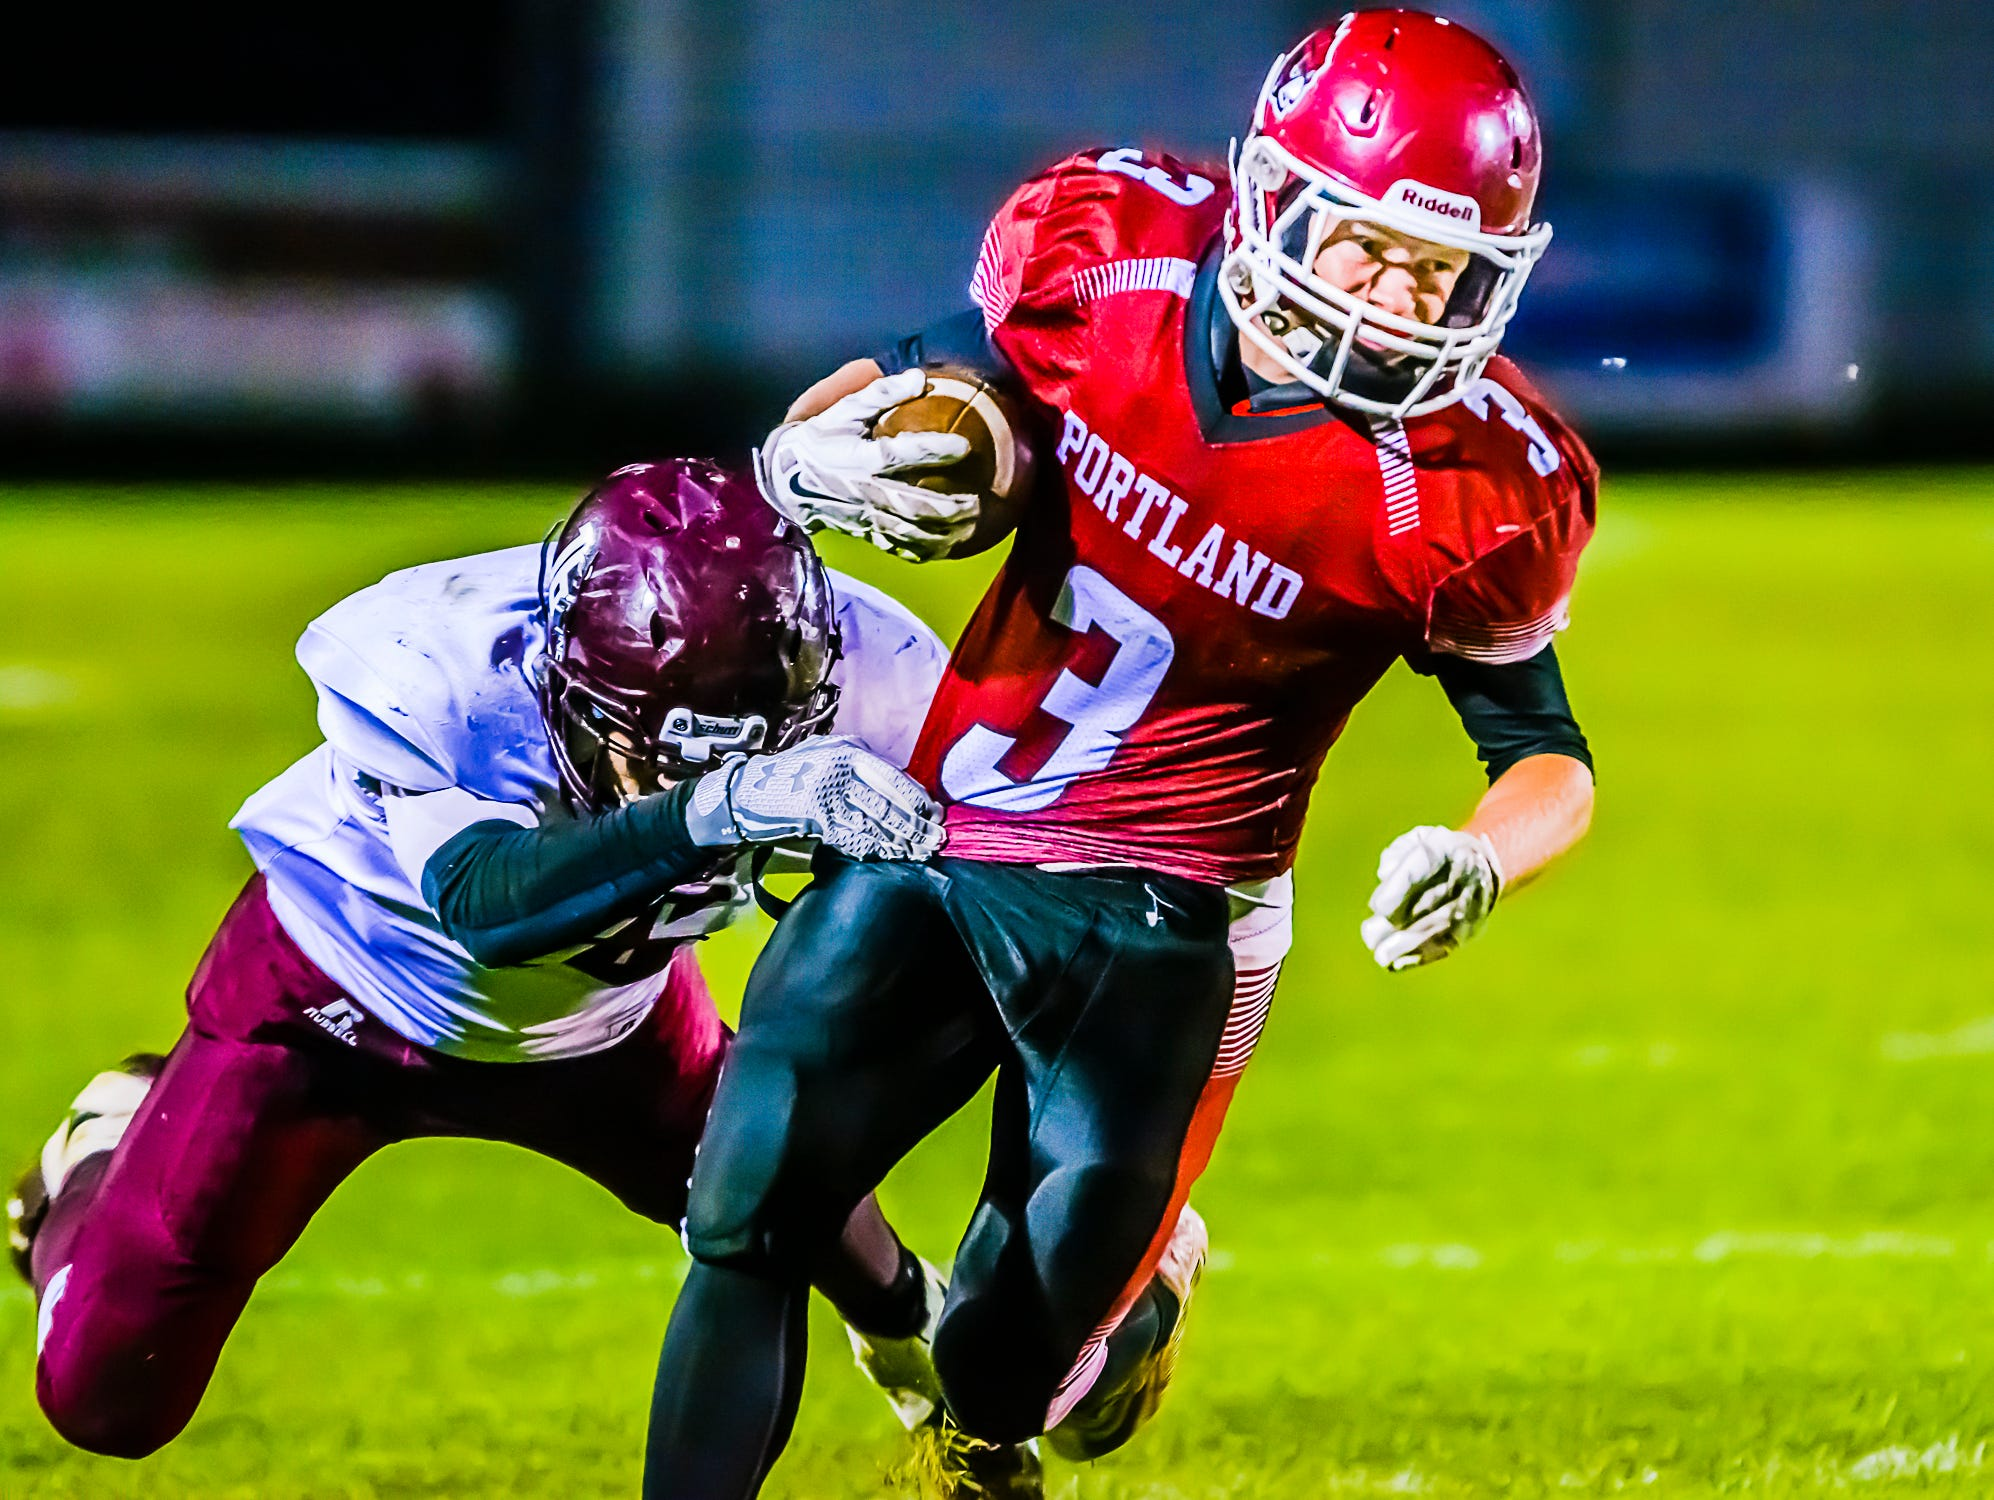 Portland's Logan Lefke was one of the area's top rushers Friday.